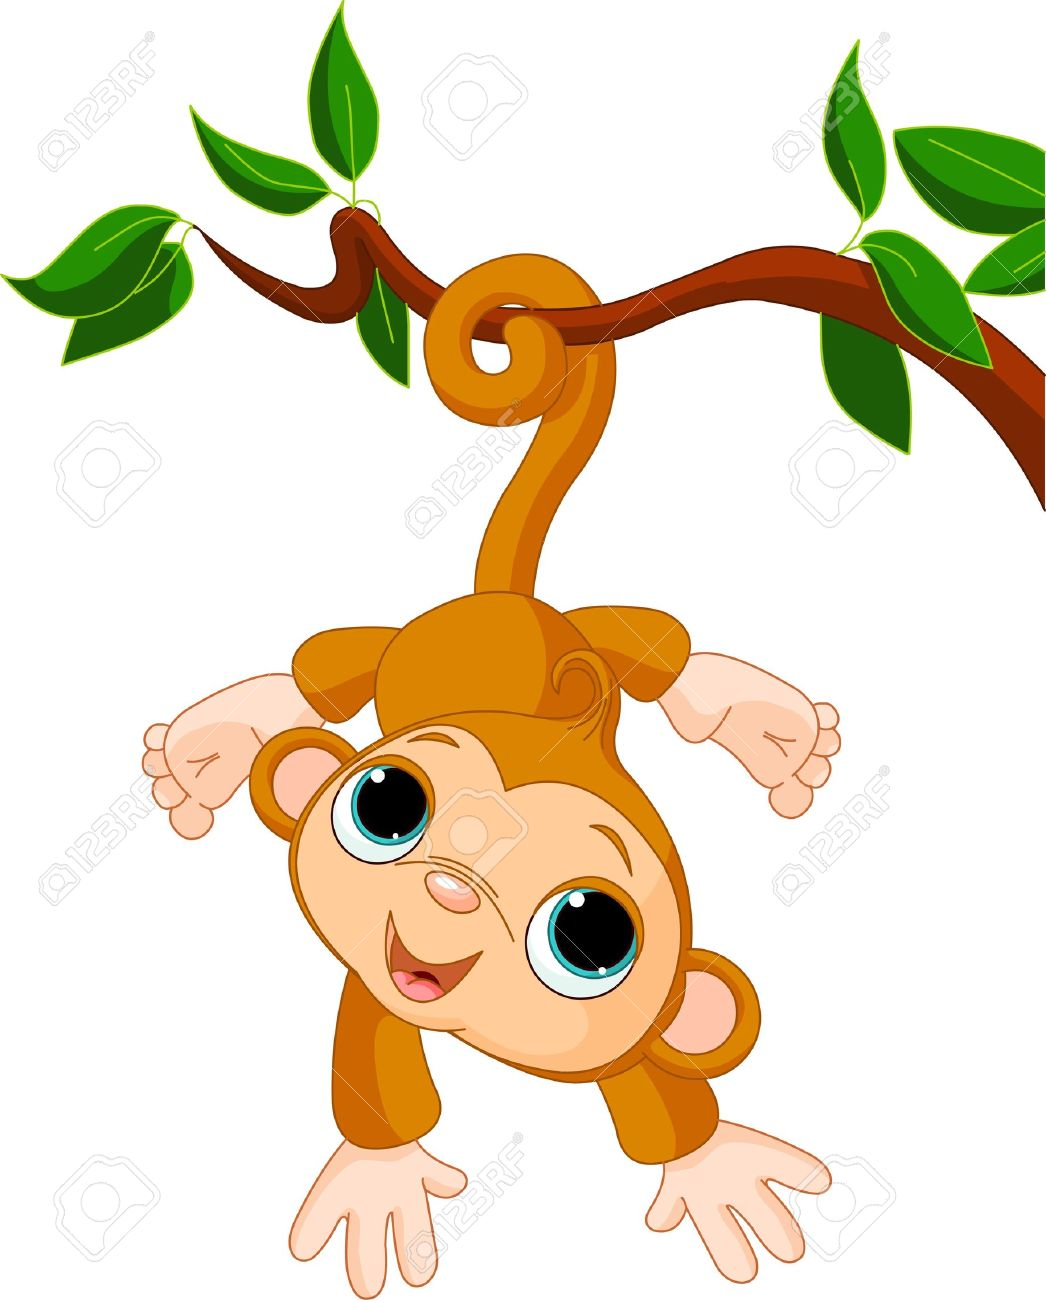 Illustration of Cute baby monkey on a tree Stock Vector - 8922725